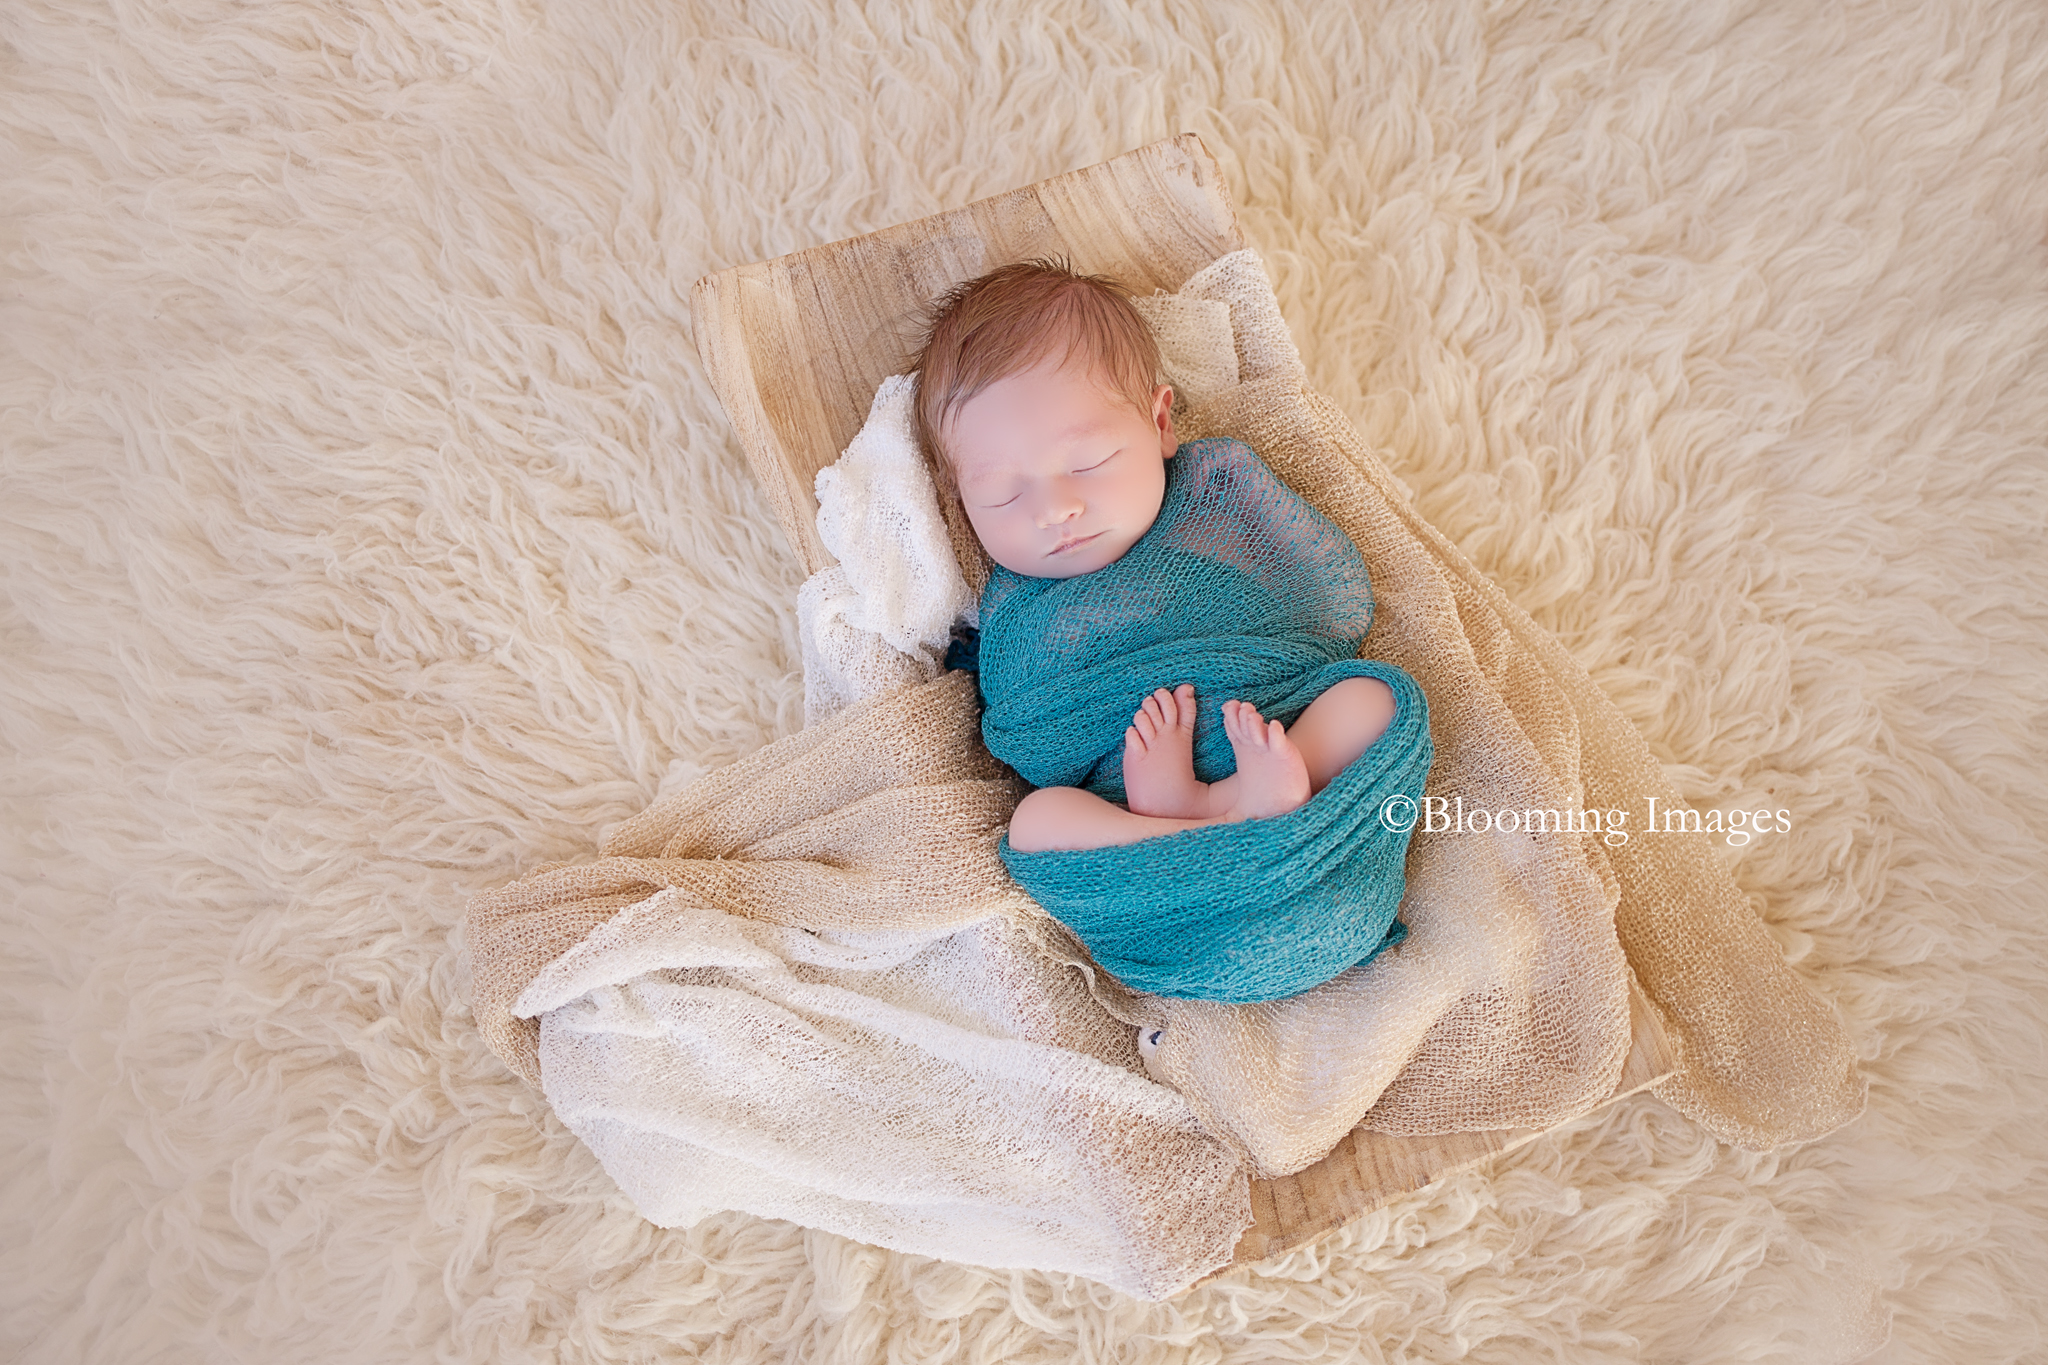 Albuquerque Newborn Photographer, Albuquerque Newborn Photographers, New Mexico Newborn Photographer, New Mexico Newborn Photographers, Baby Photographer in Albuquerque, Albuquerque baby photographer, Albuquerque baby photographers